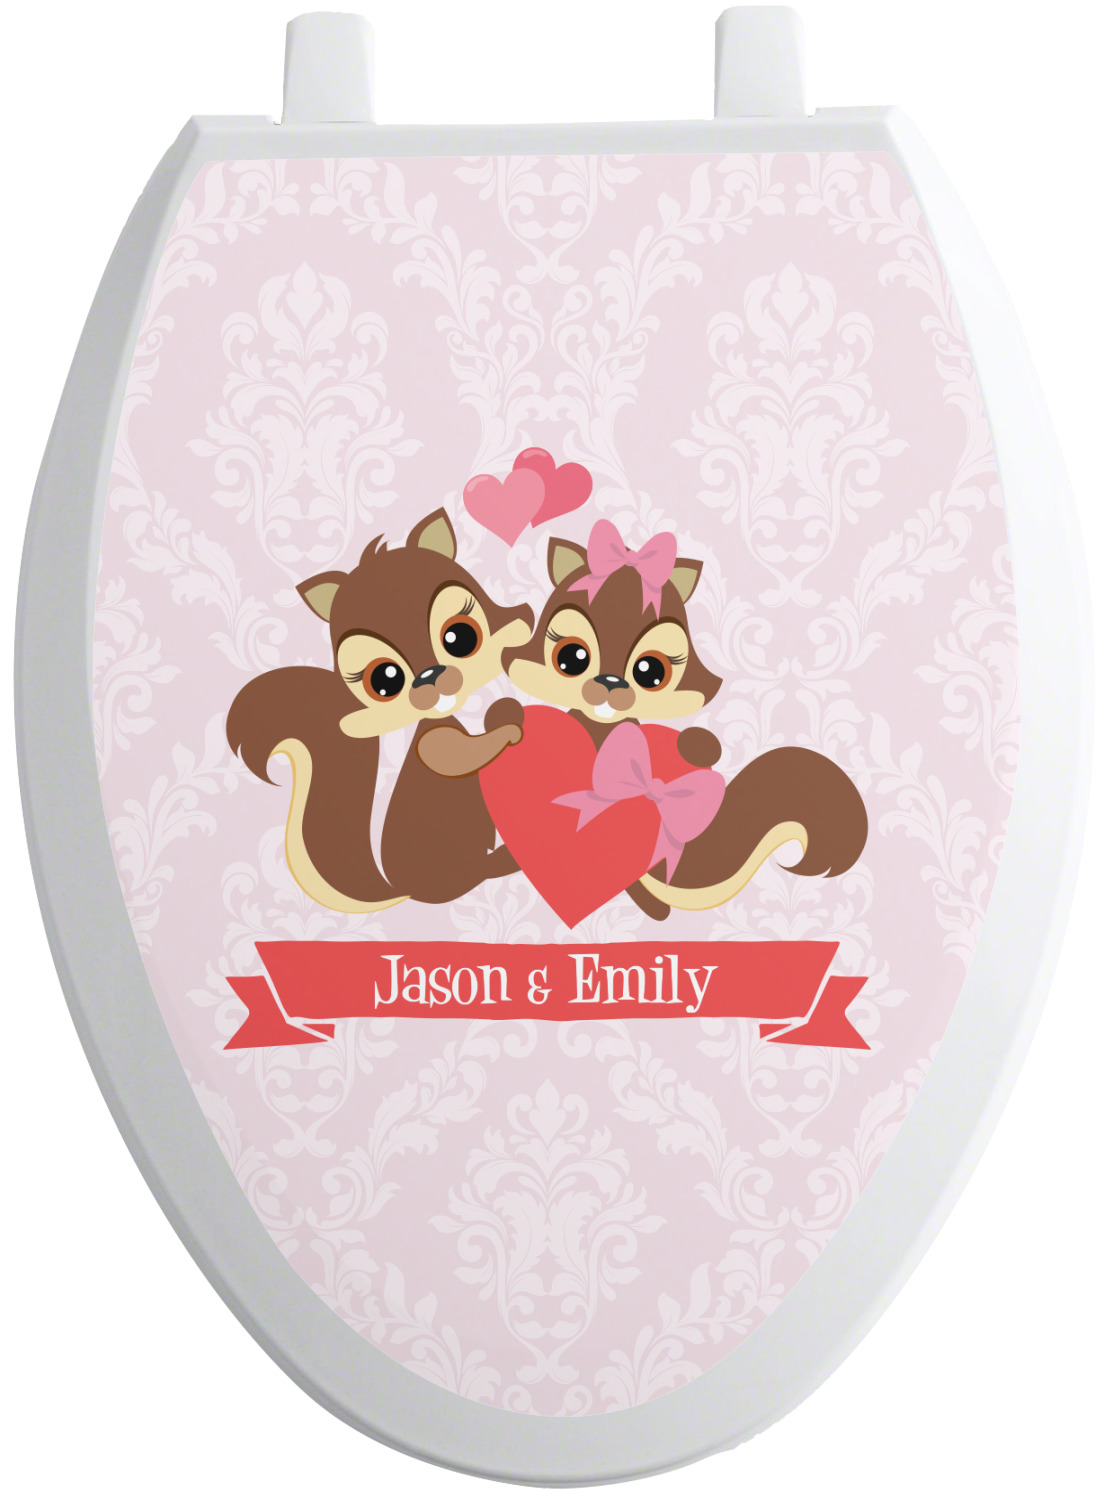 chipmunk couple toilet seat decal elongated. Black Bedroom Furniture Sets. Home Design Ideas